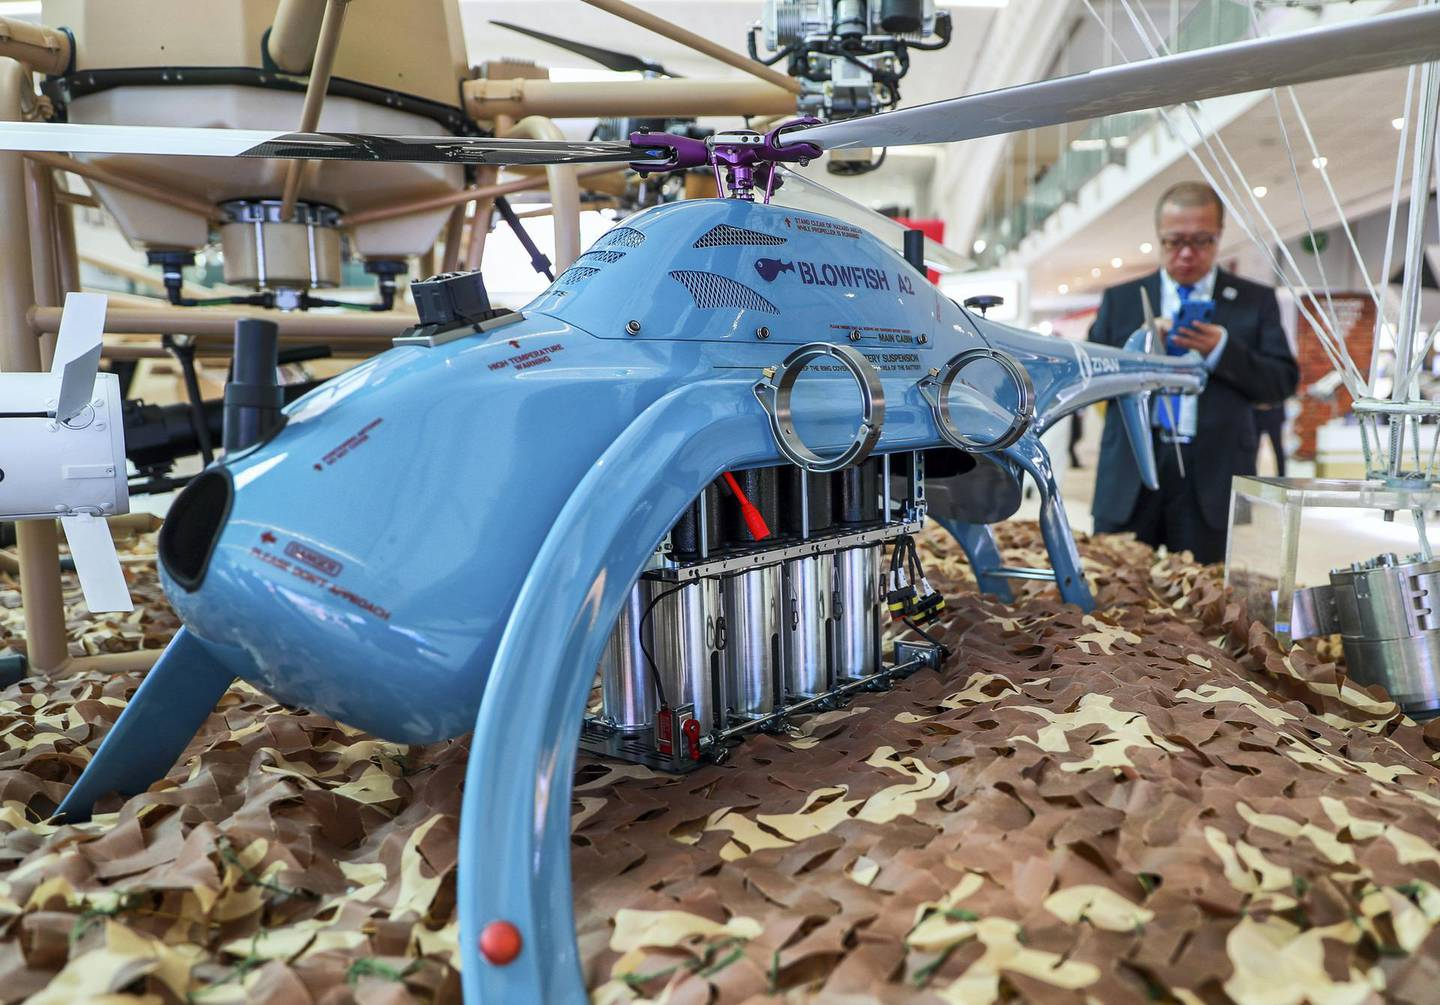 Abu Dhabi, U.A.E., February 17, 2019. INTERNATIONAL DEFENCE EXHIBITION AND CONFERENCE  2019 (IDEX) Day 1--  The Chinese made Blowfish A2, helicopter drone.Victor Besa/The NationalSection:  NAReporter;